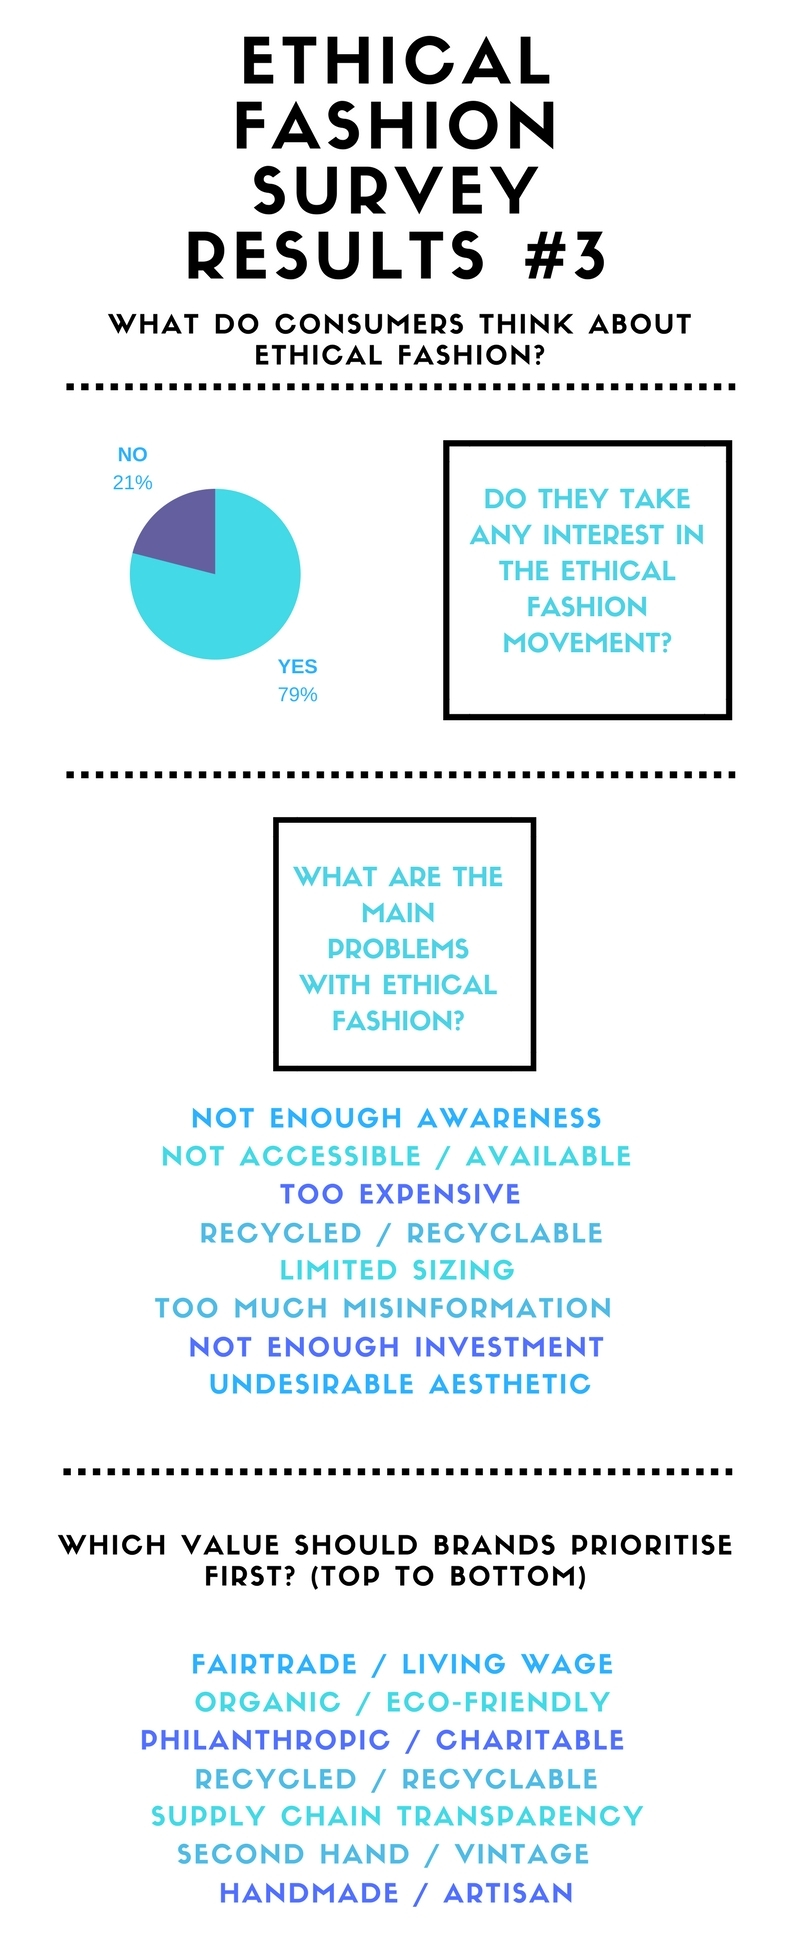 Ethical-fashion-survey-results-3.jpg